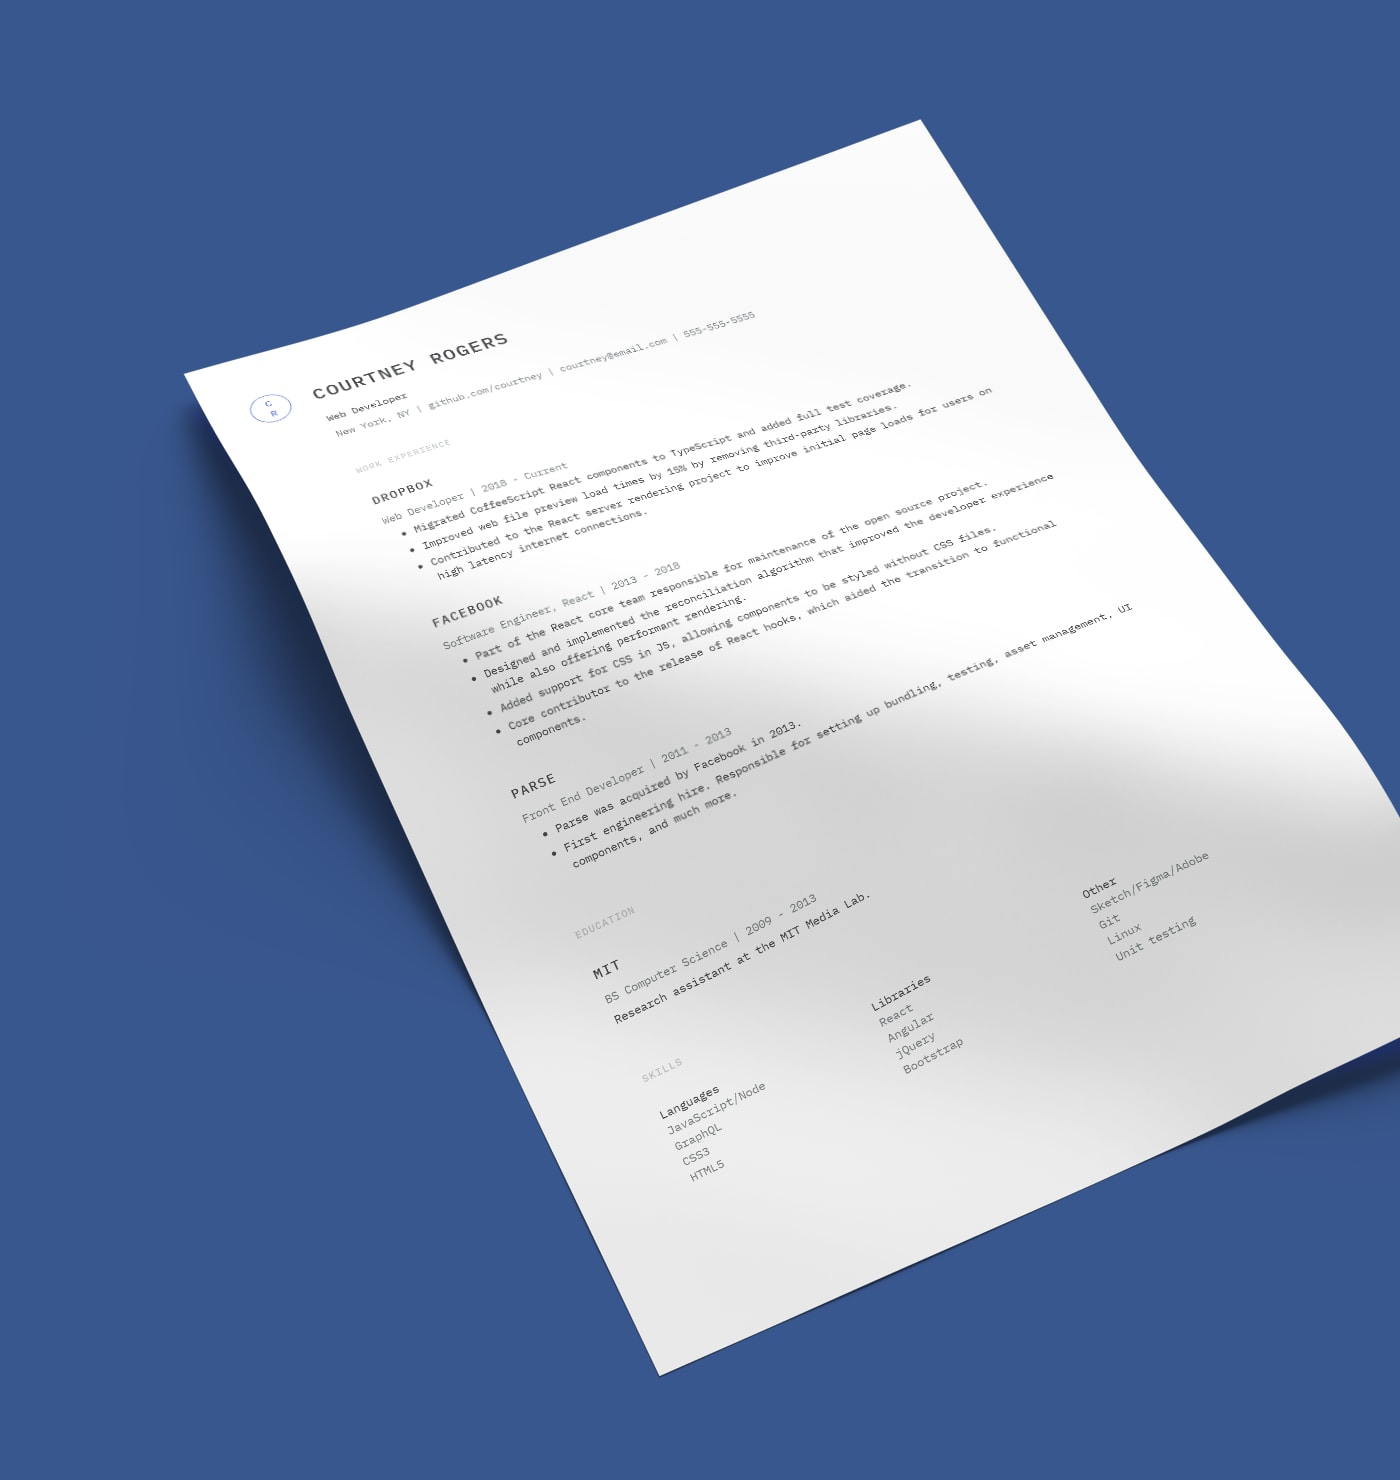 Keefer simple resume template created with Standard Resume builder.